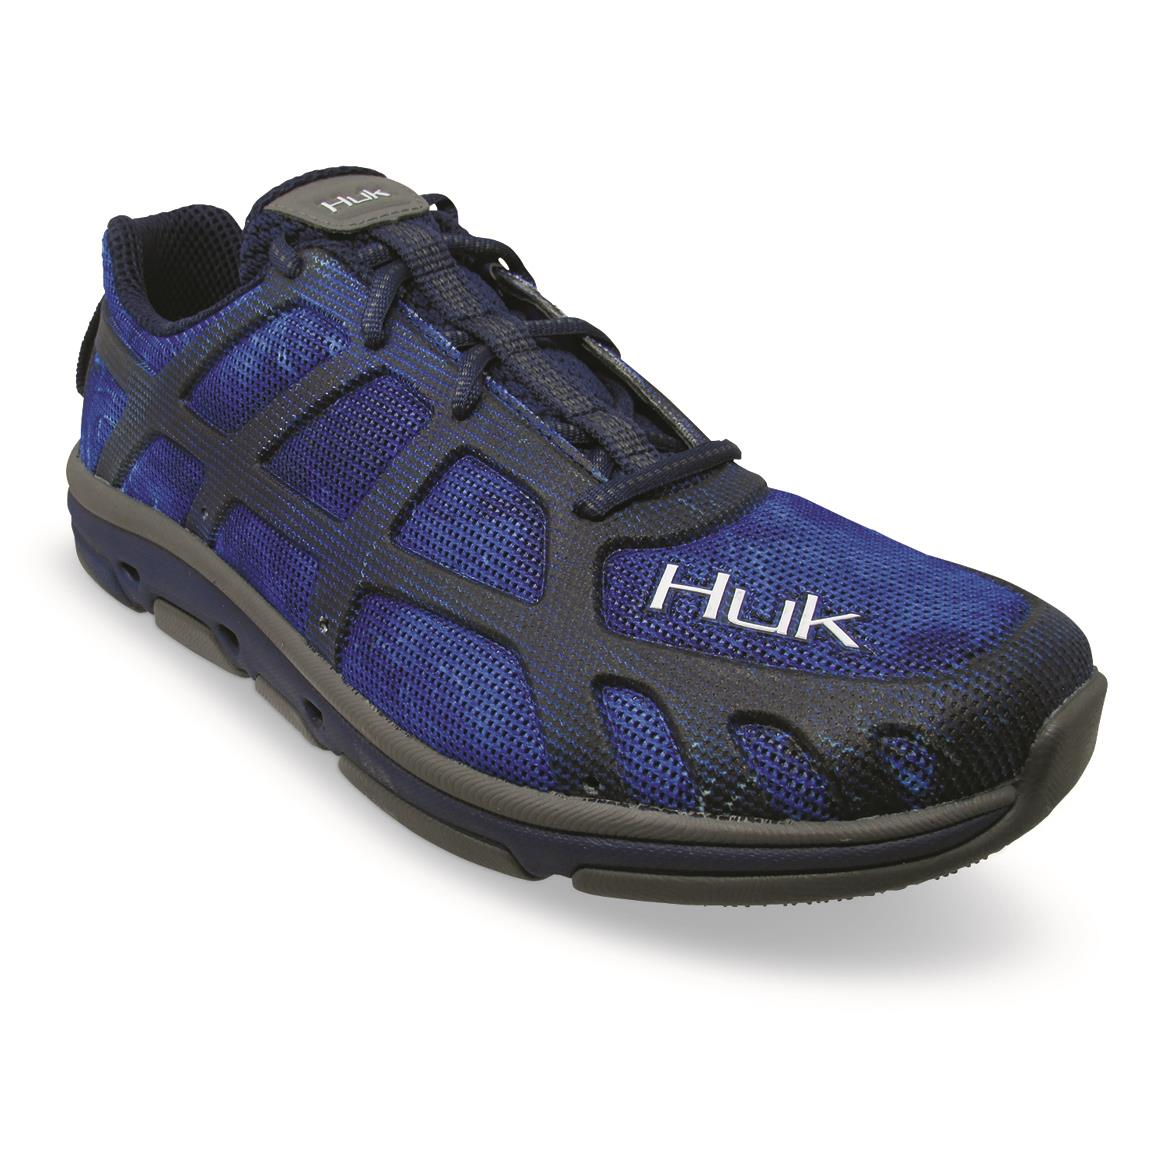 Huk Attack Fishing Shoes, Subphantis Gulf Stream